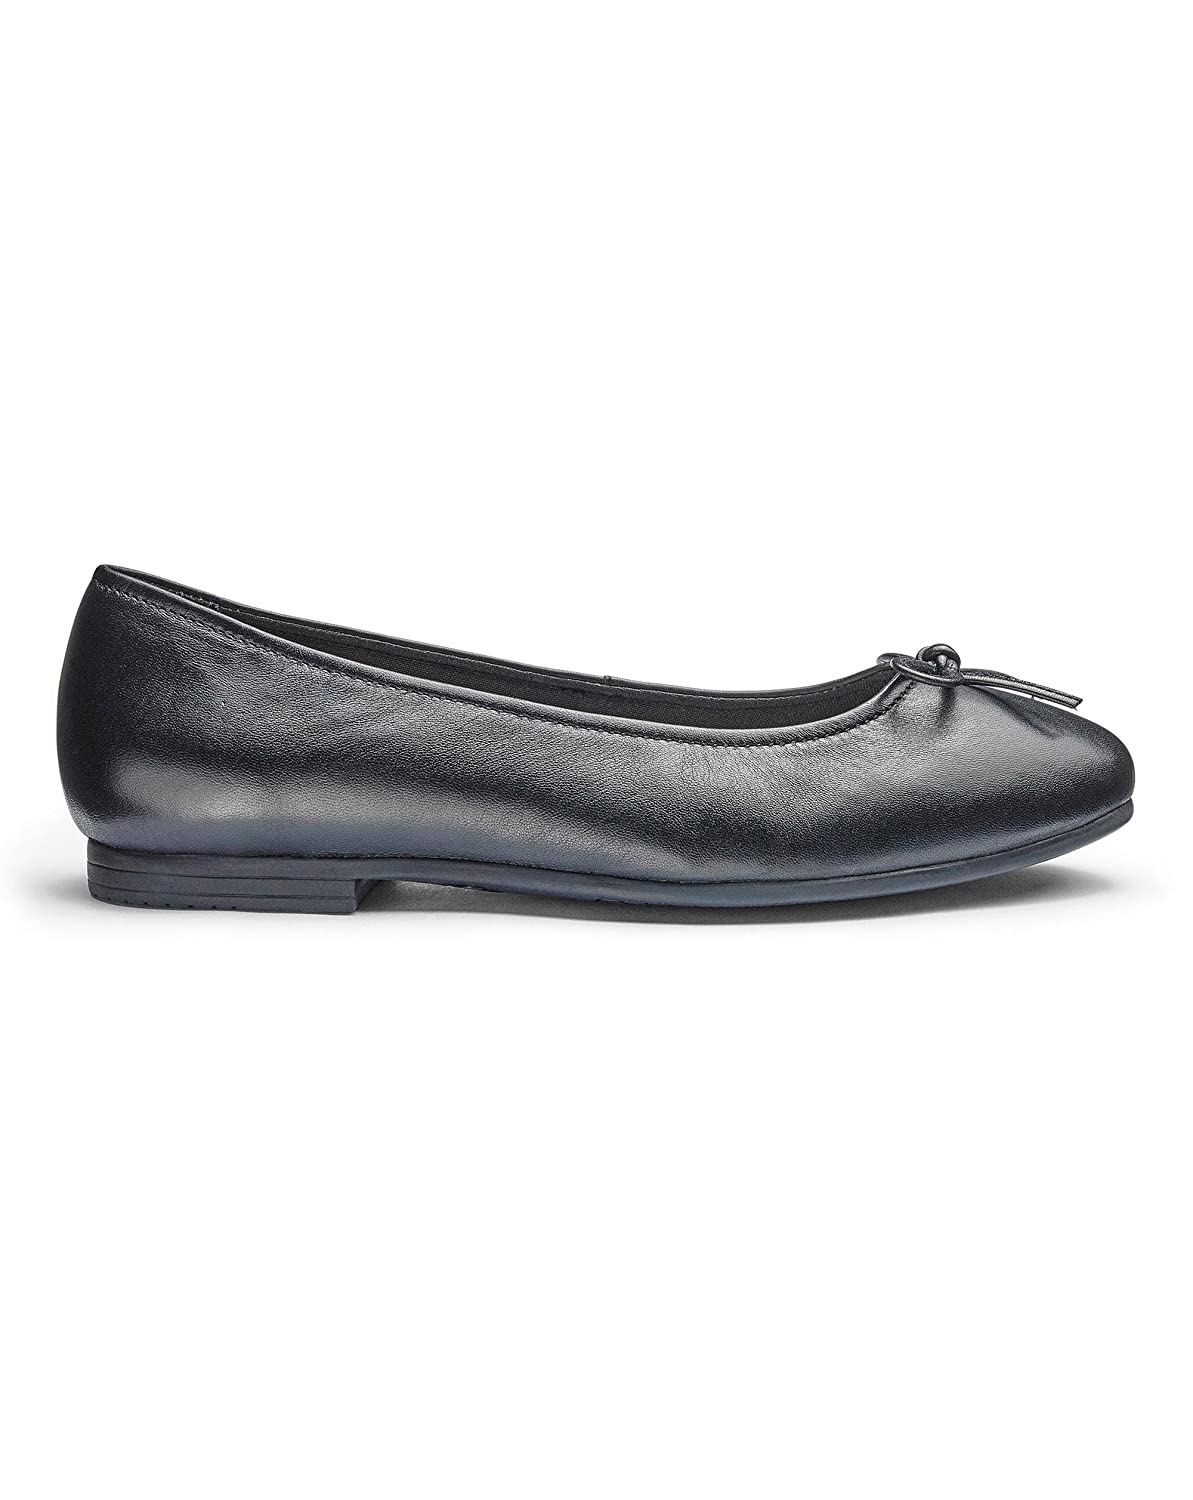 JD Williams | SKECHERS | Outlet Flats